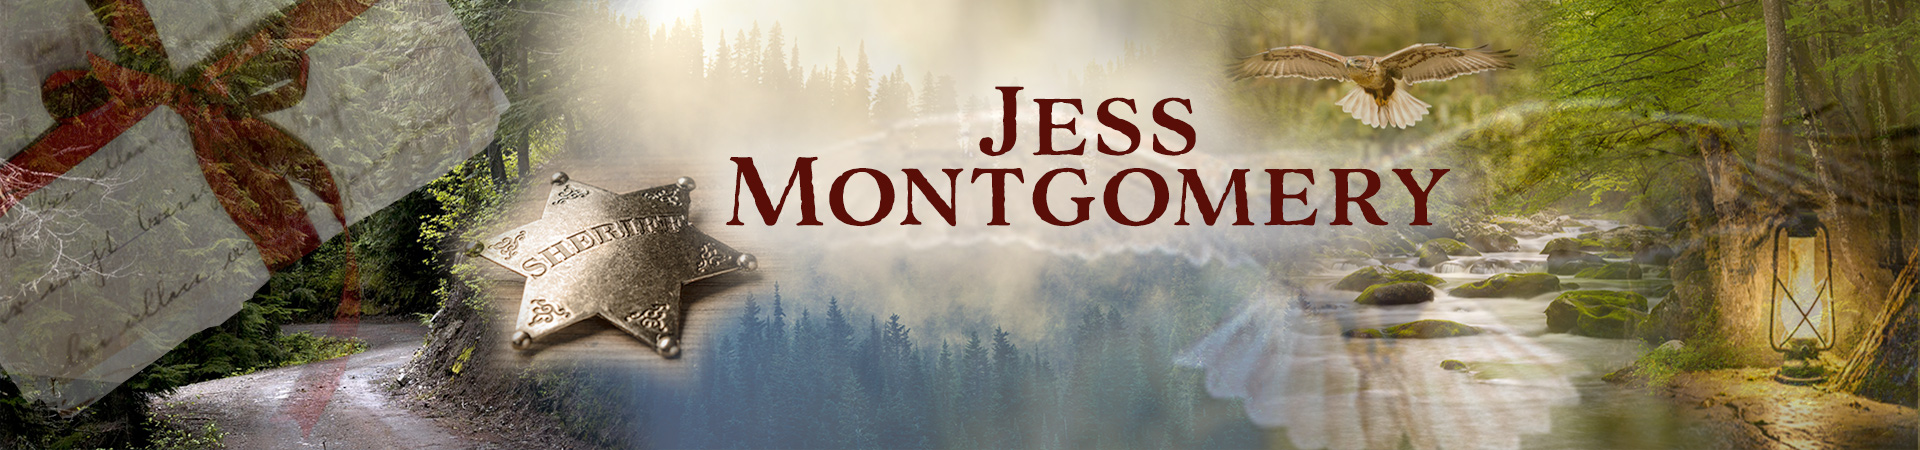 Author Jess Montgomery